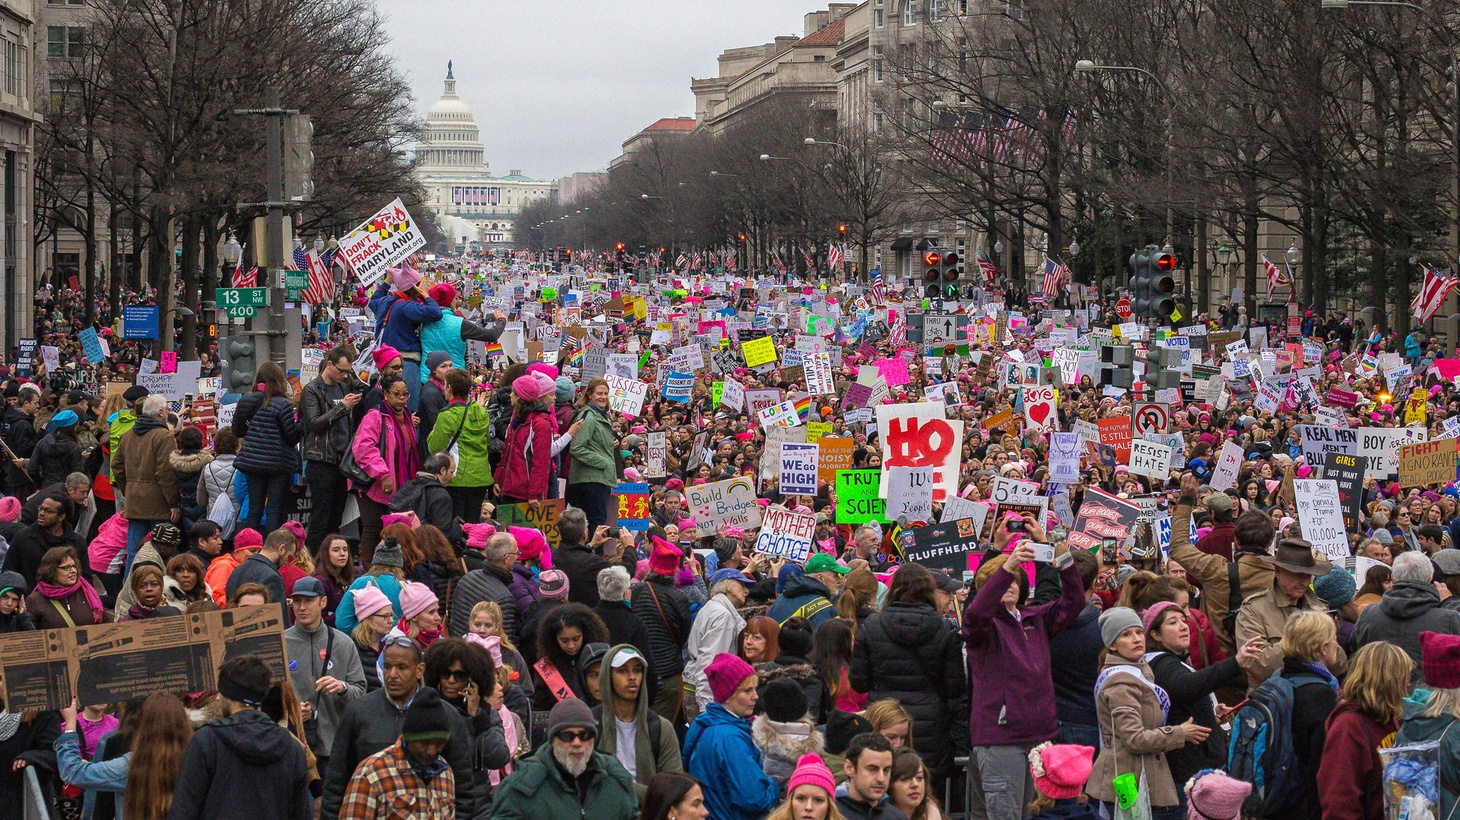 The Trump White House may disagree, but Saturday's turnout of protesters all over the country dwarfed the crowds who showed up for Friday's inauguration. Was it political theater… or the beginning of something new?